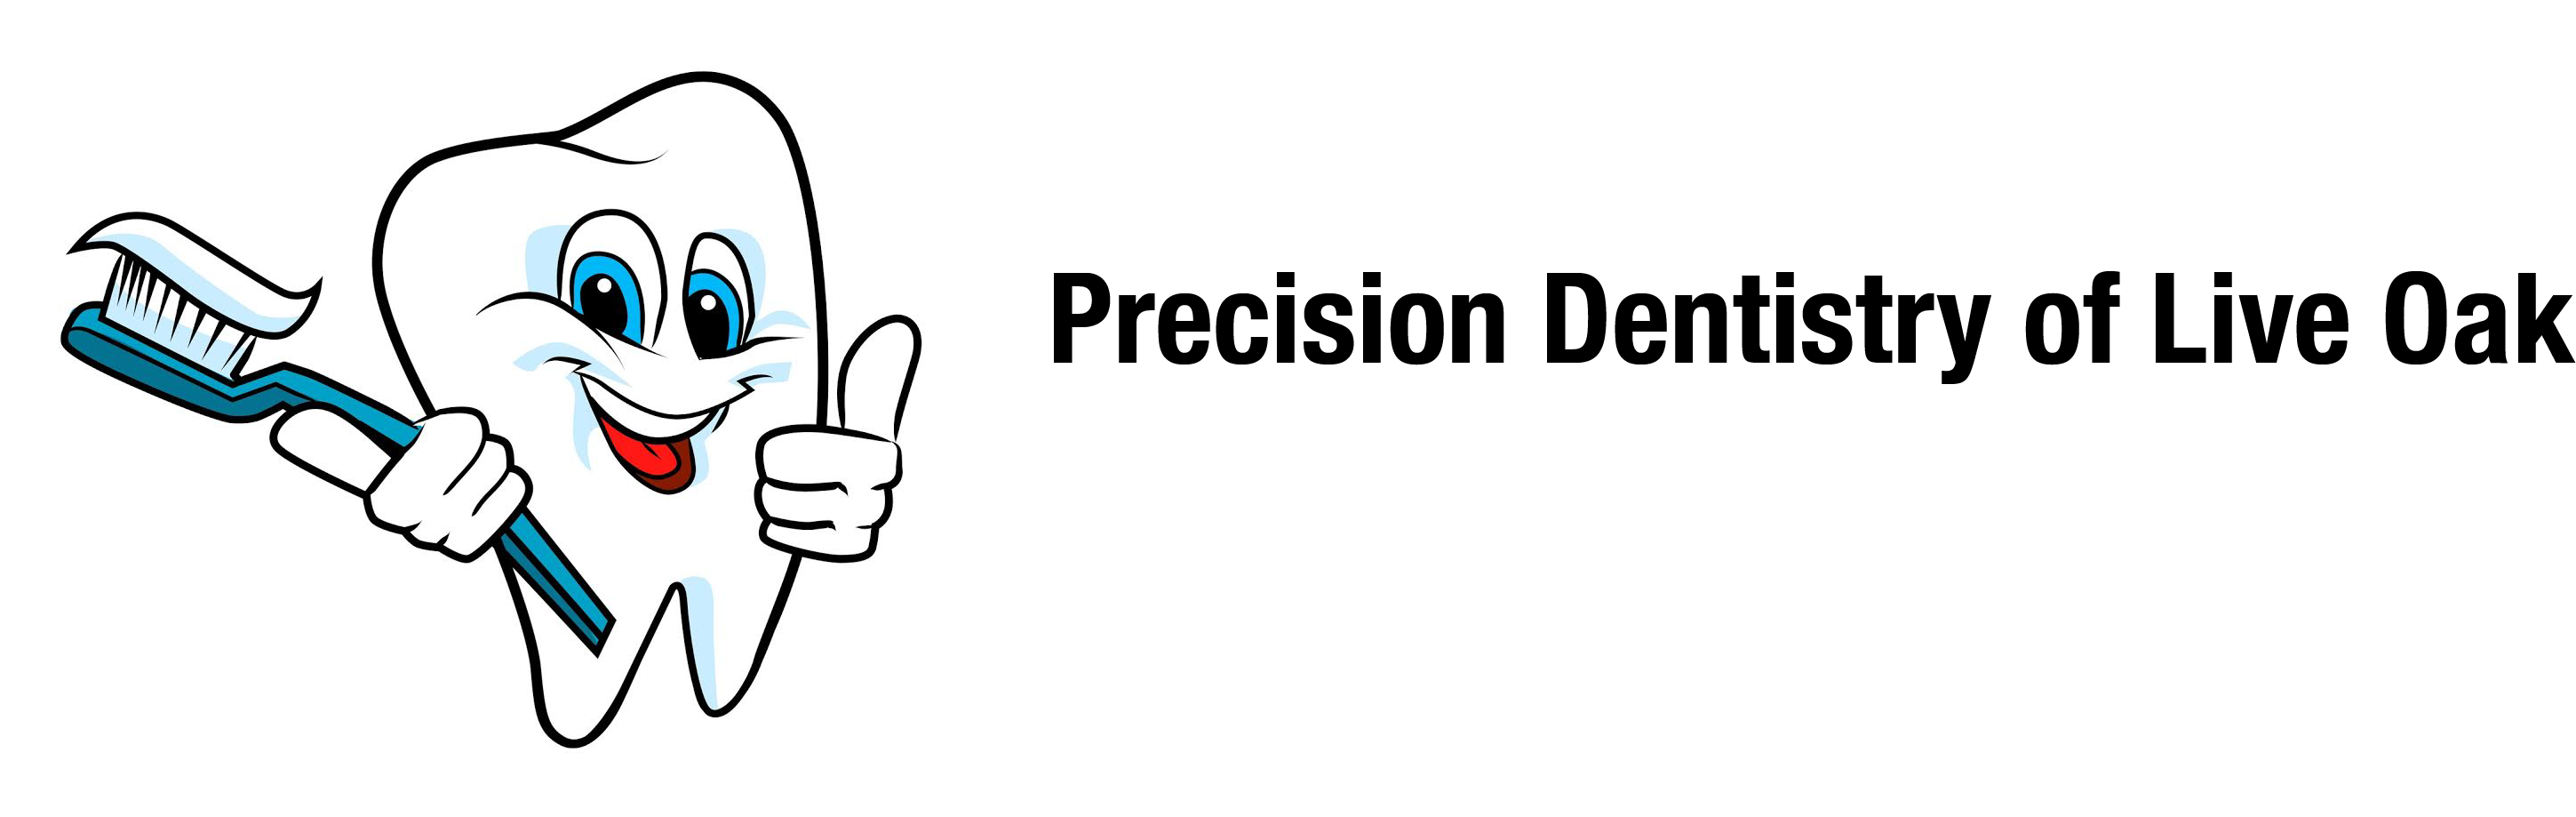 Precision Dentistry of Live Oak